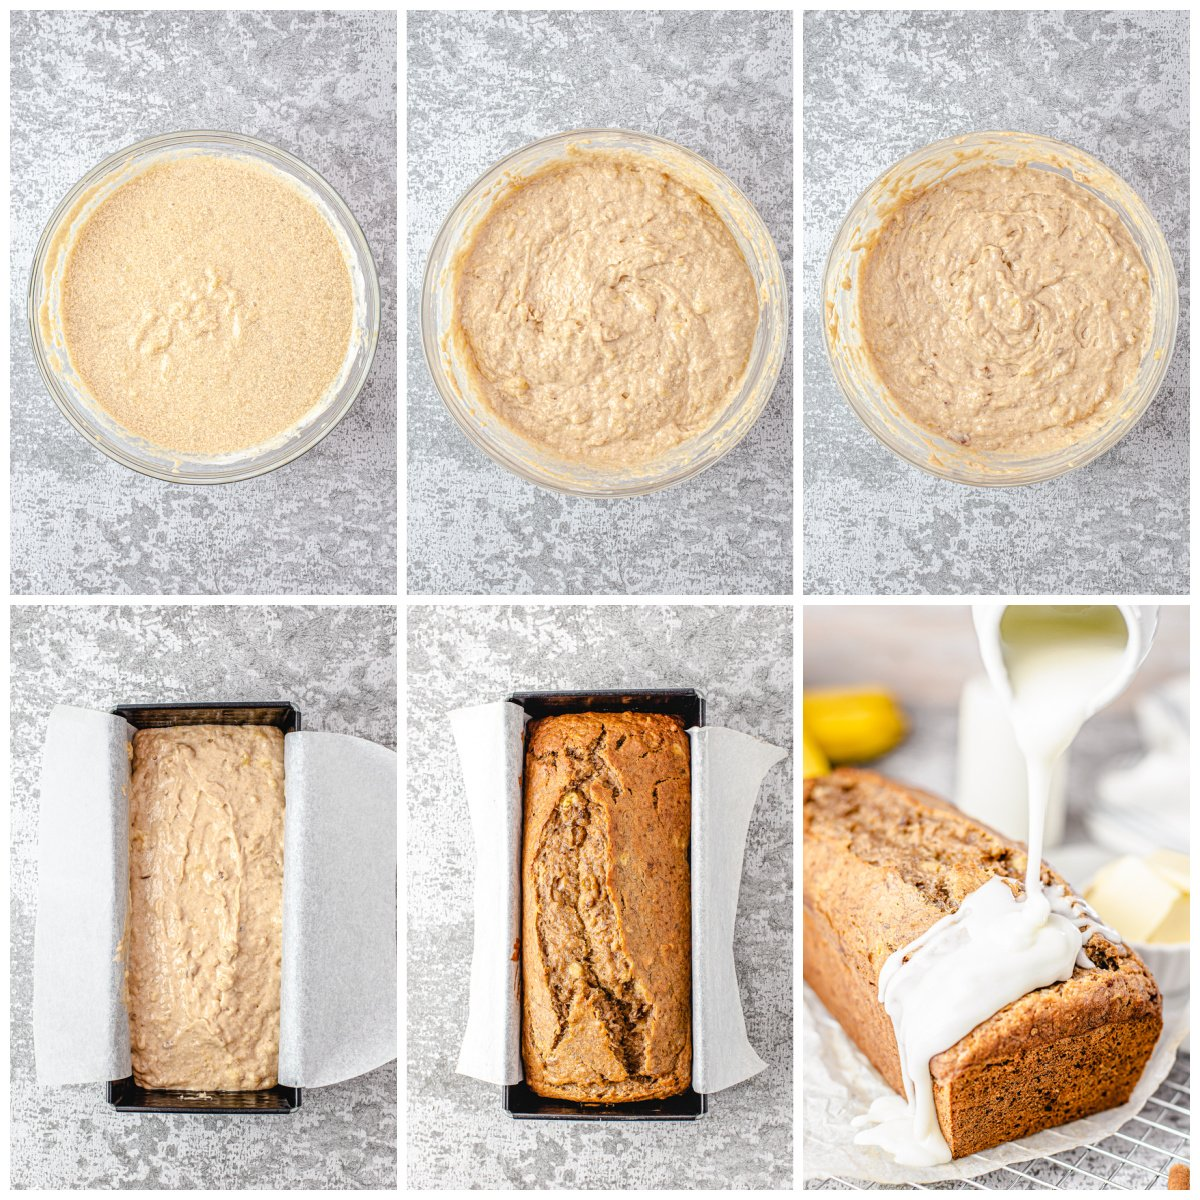 Step by step photos on how to make Banana Nut Bread